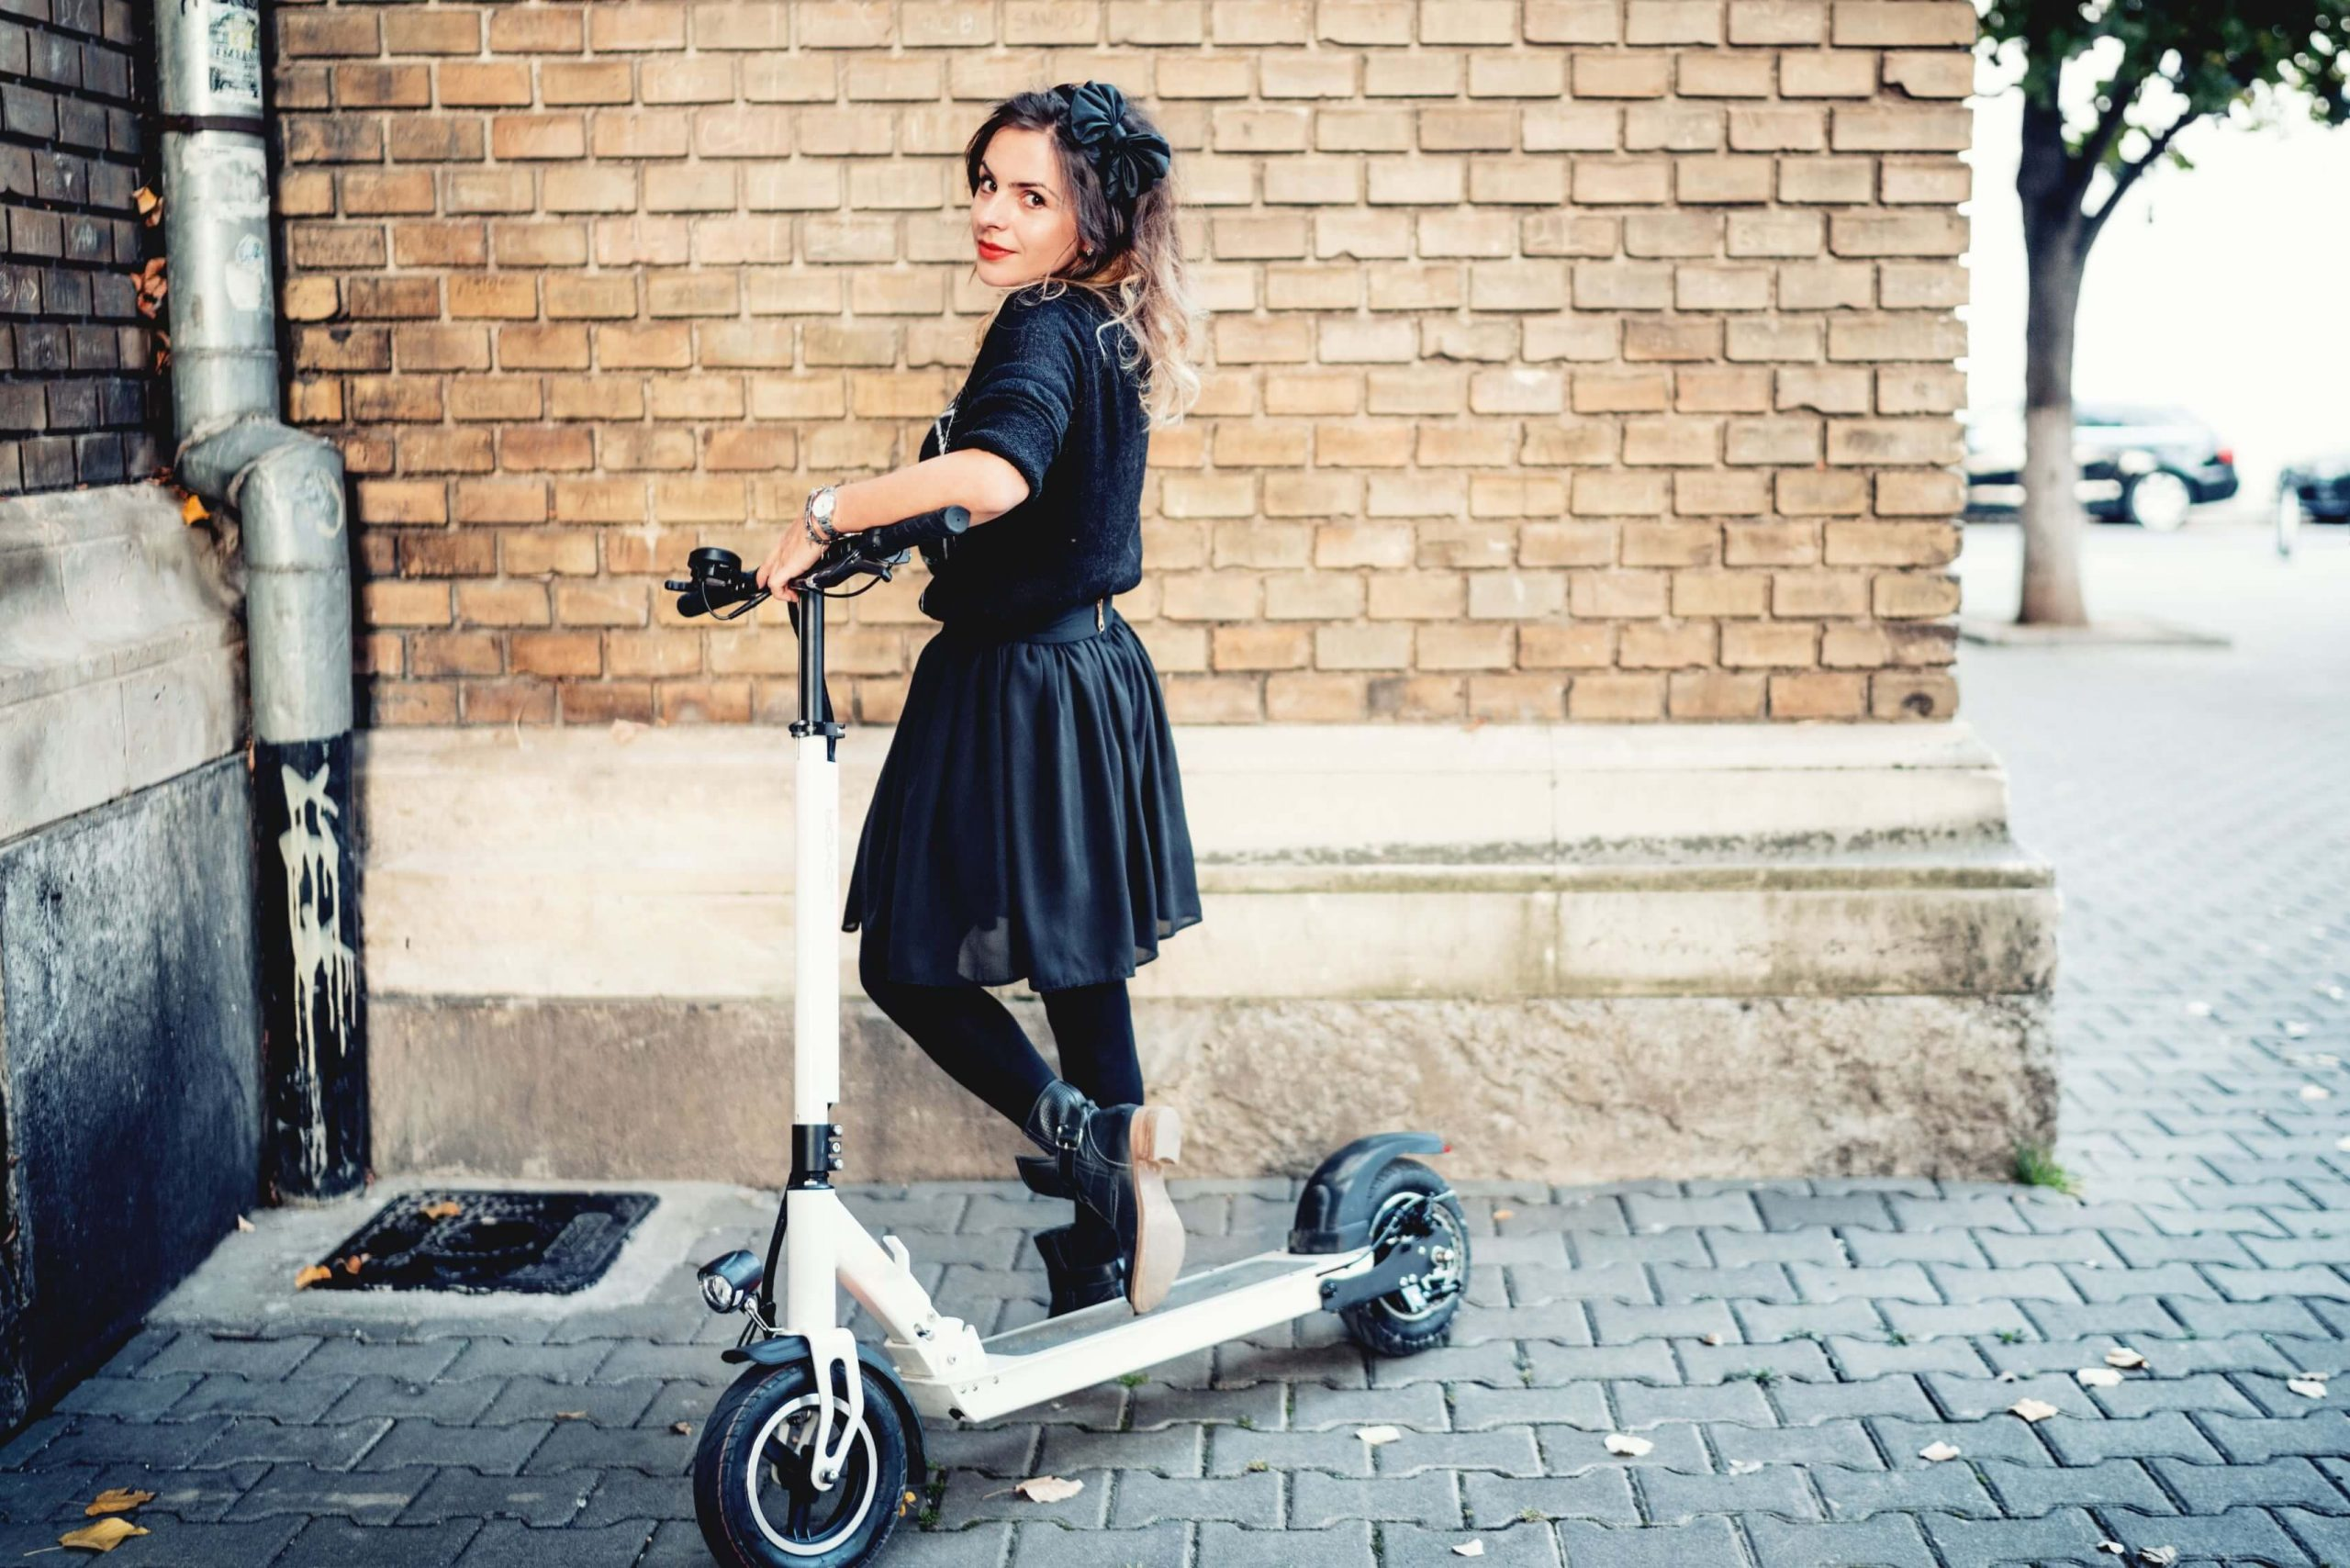 Top 10 Fastest Electric Scooters – Go FASTER But With Caution